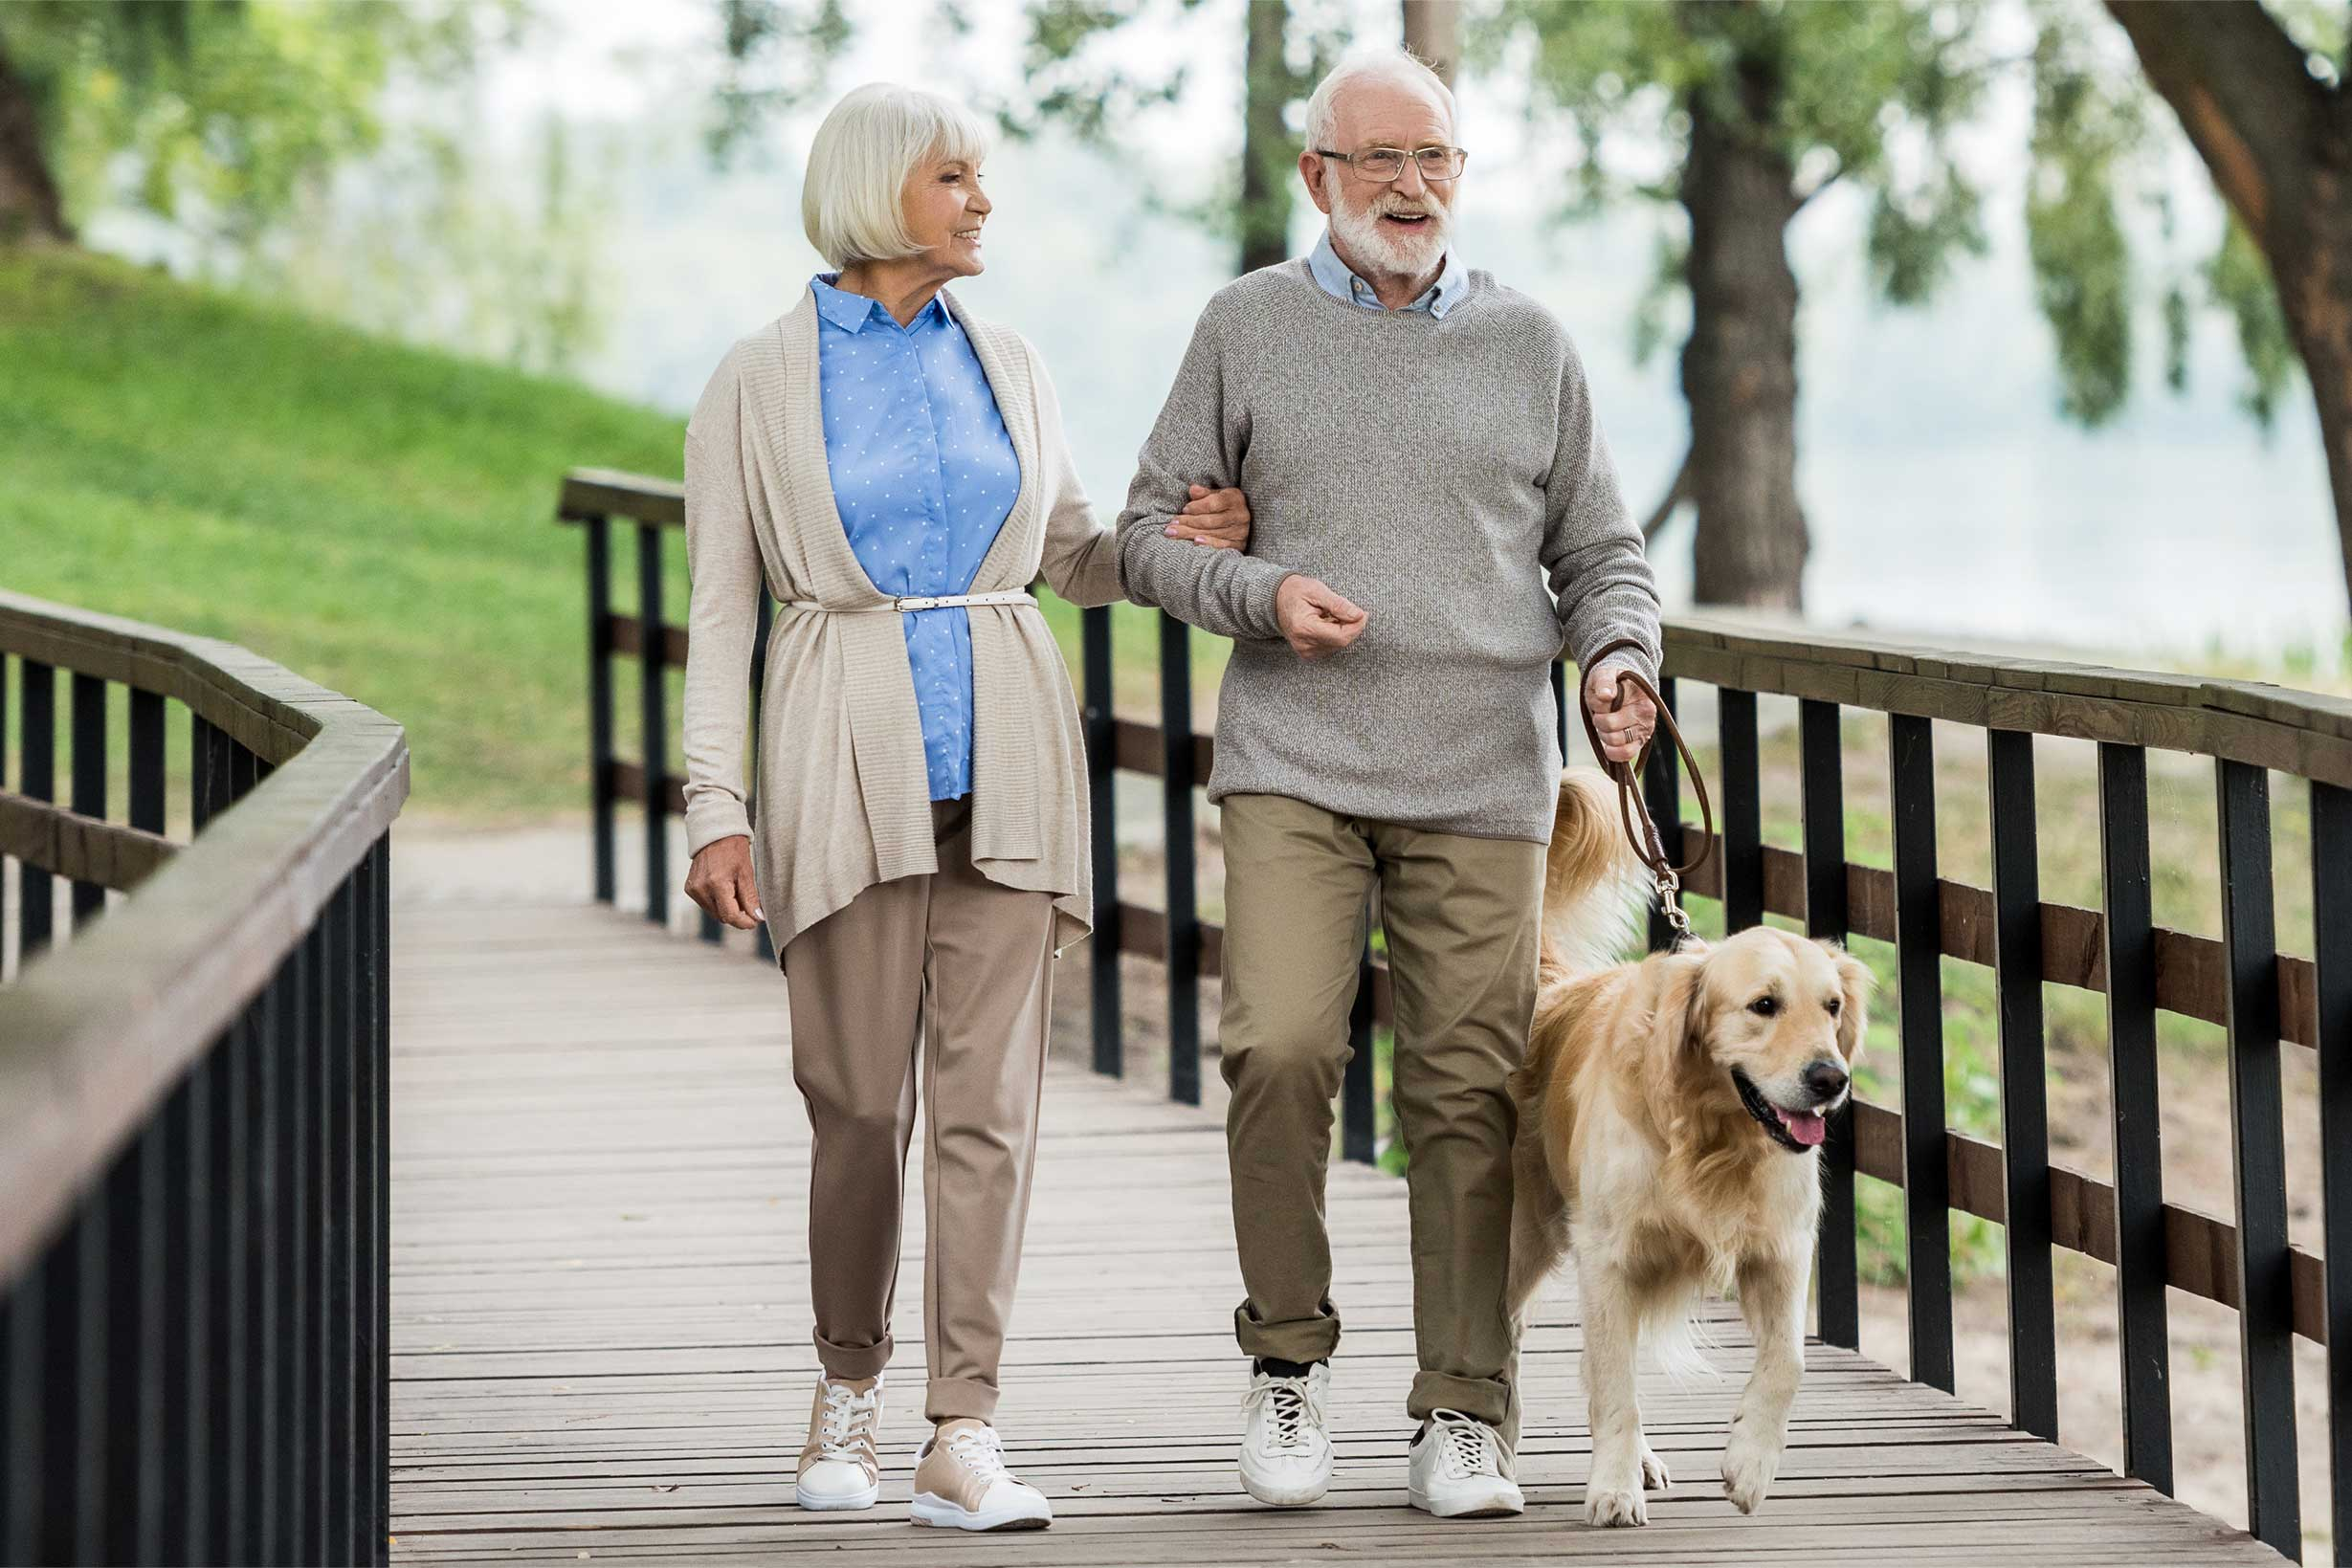 Walking Is An Important Activity For Seniors